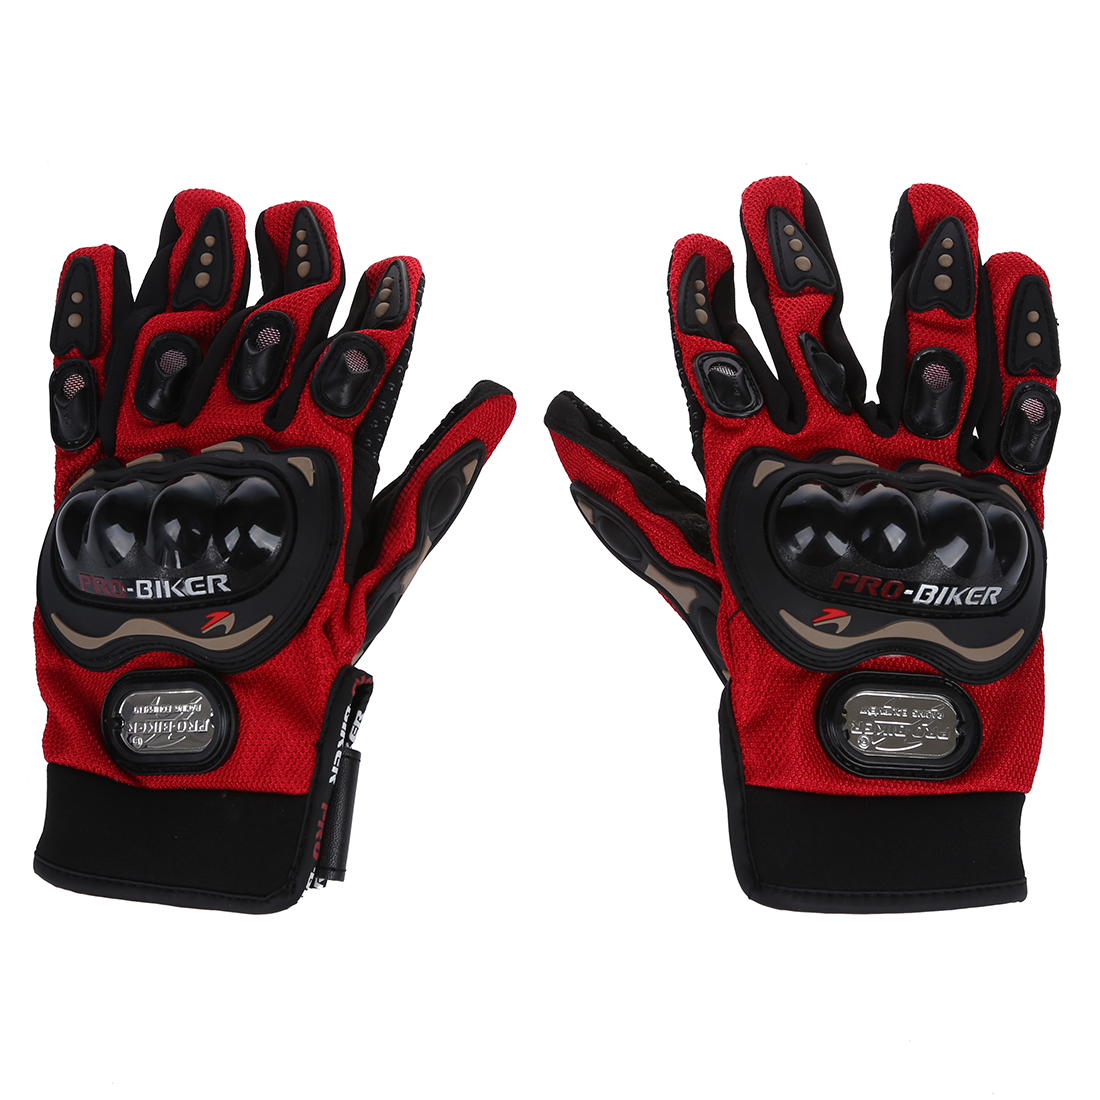 Insulated leather motorcycle gloves -  Compare Prices On Waterproof Thermal Gloves Online Ping